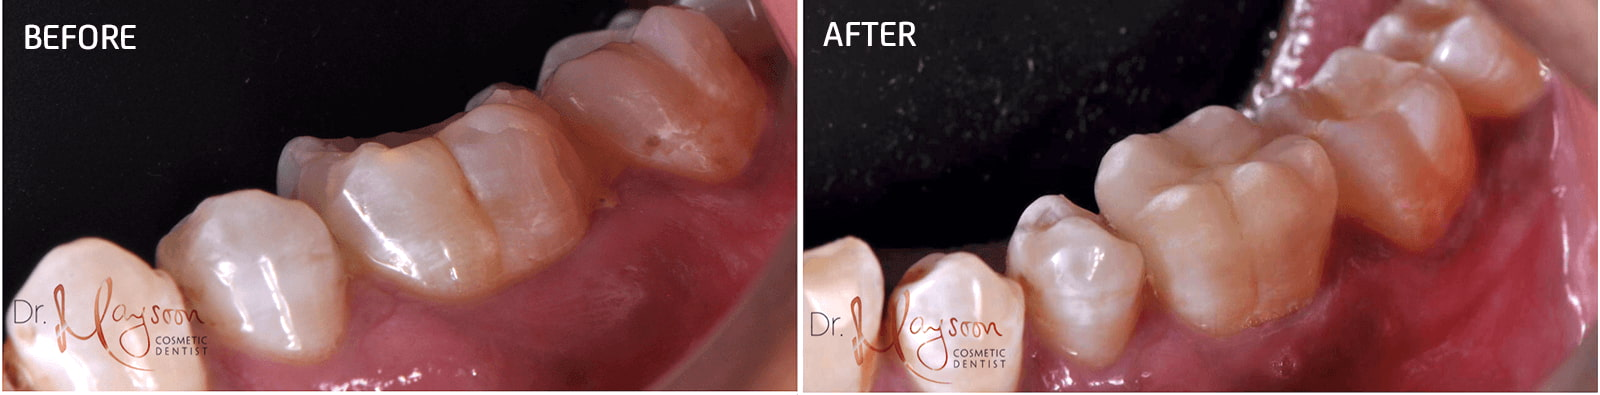 porcelain onlay to restore tooth shape aesthetics dr tosun dental clinic